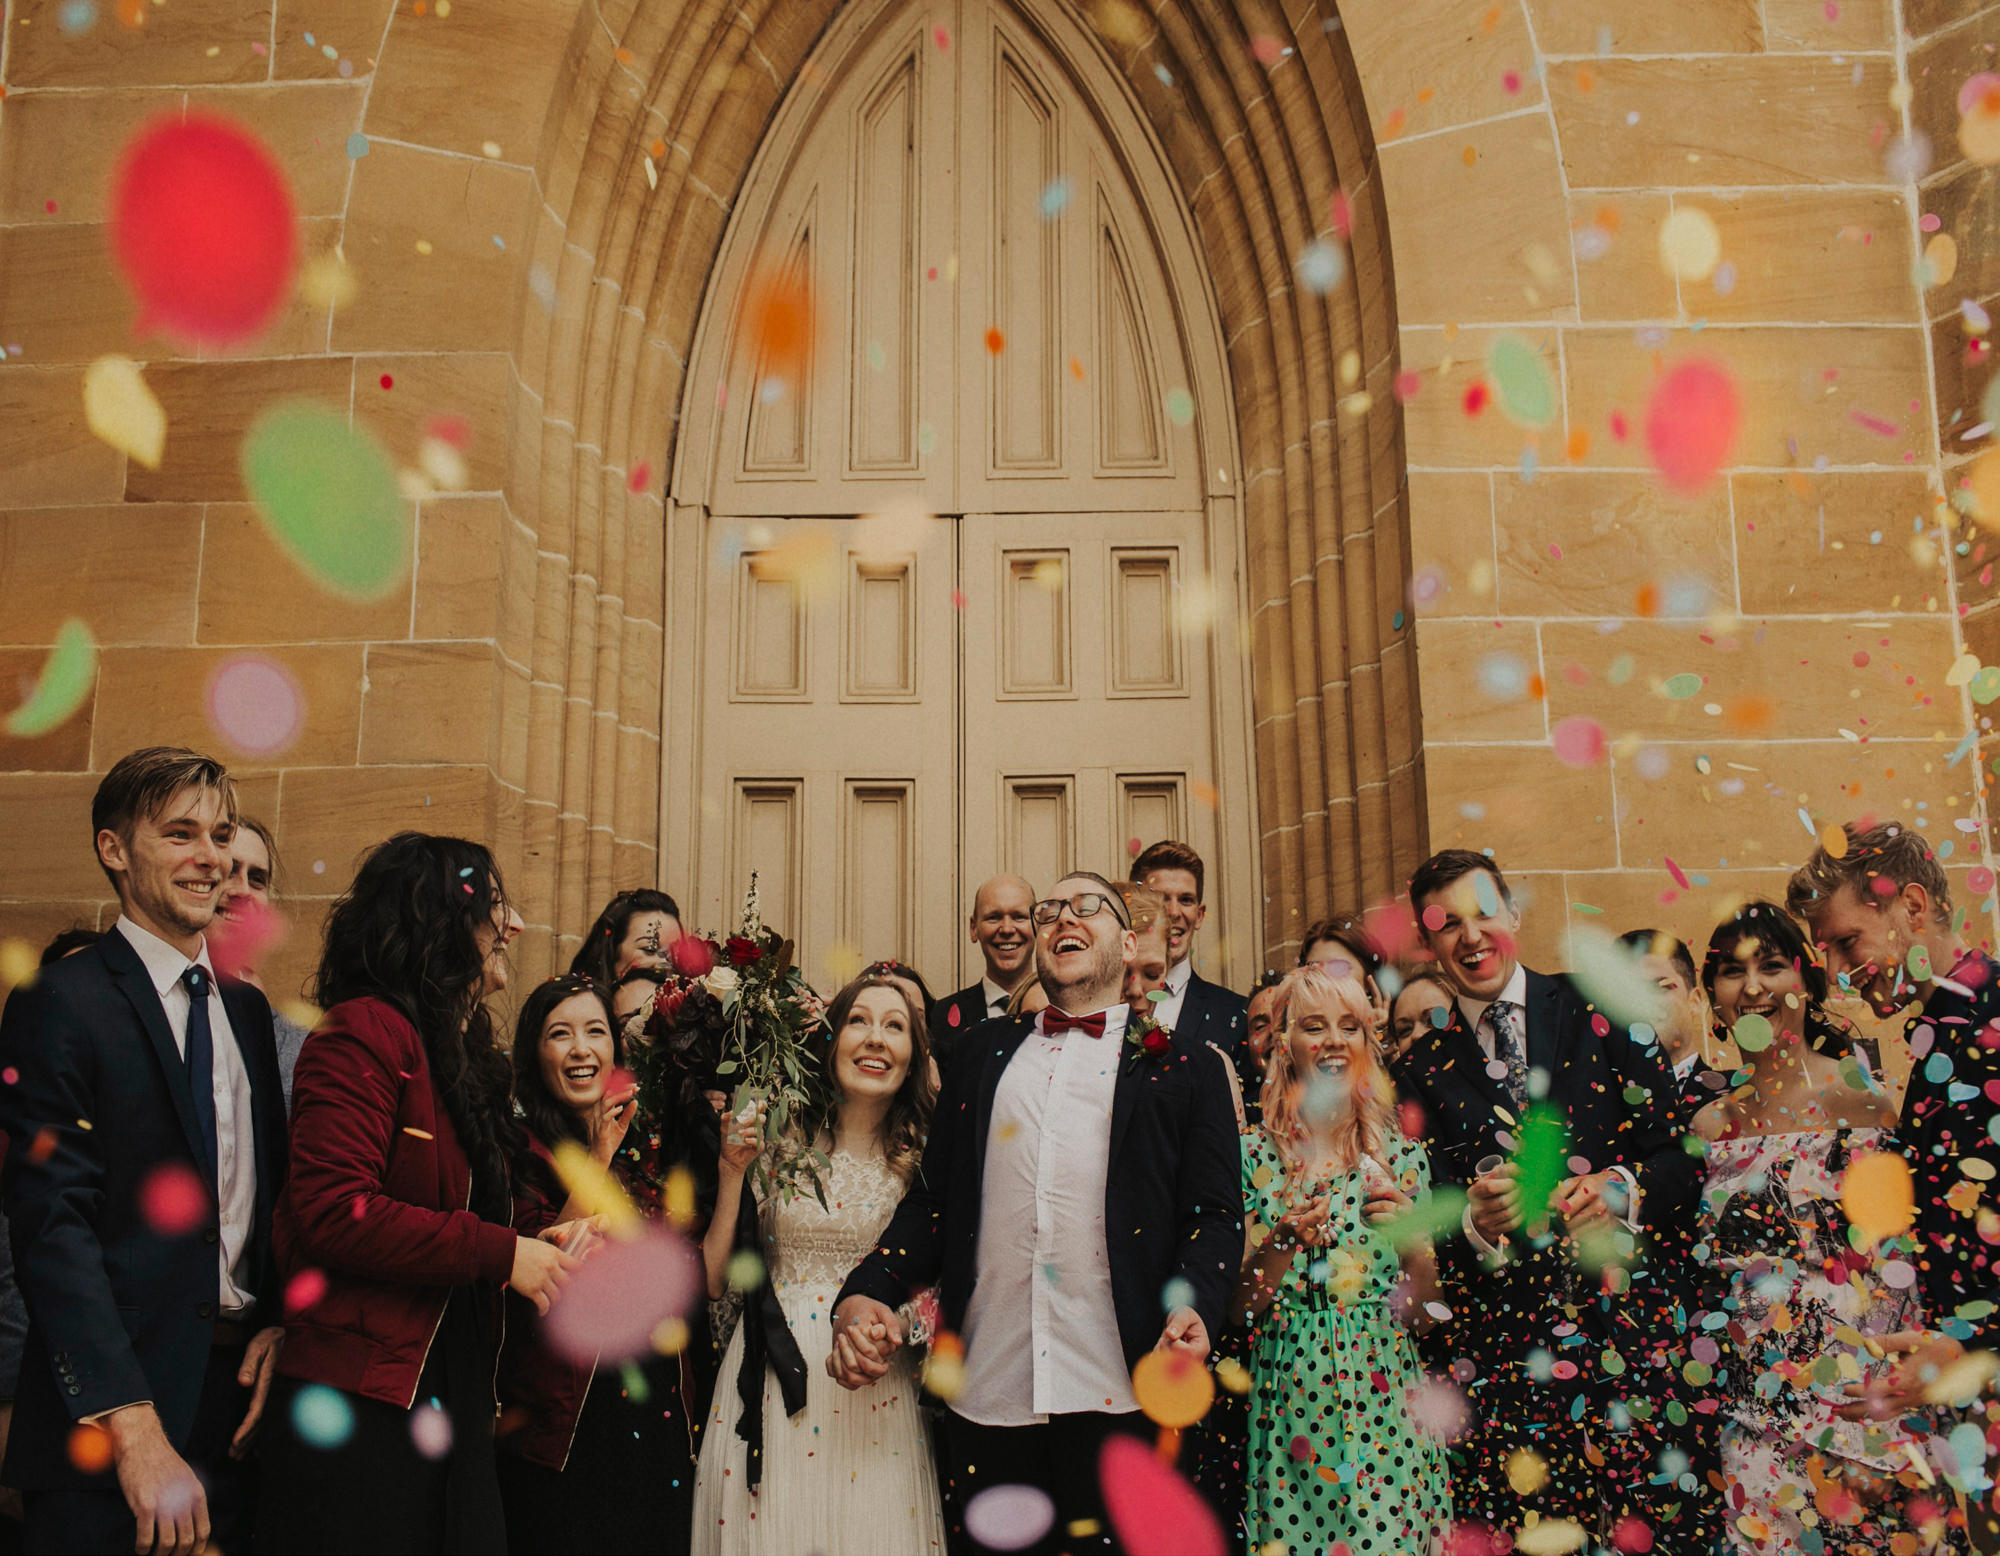 Bride and groom have colorful confetti exit - photo by Dan O'Day